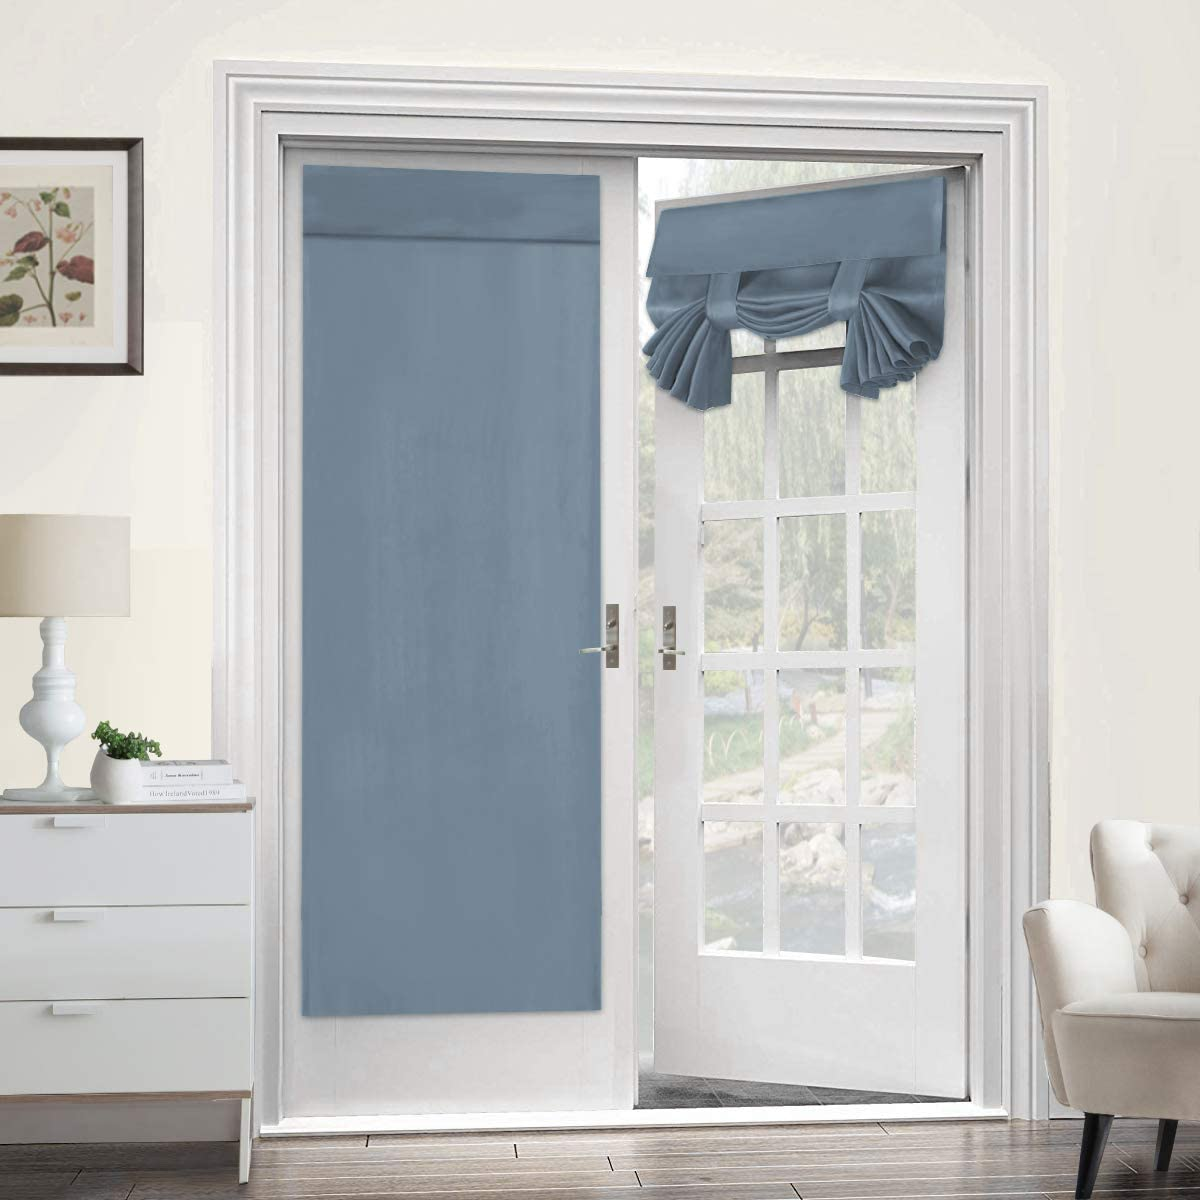 Turquoize Blackout Door Curtain Panel for French Door Curtains Solid Teal Curtains for Tricia Door Panel Single Panel-Thermal Insulated & Privacy Assured Window Drape - 1 Panel, Stone Blue